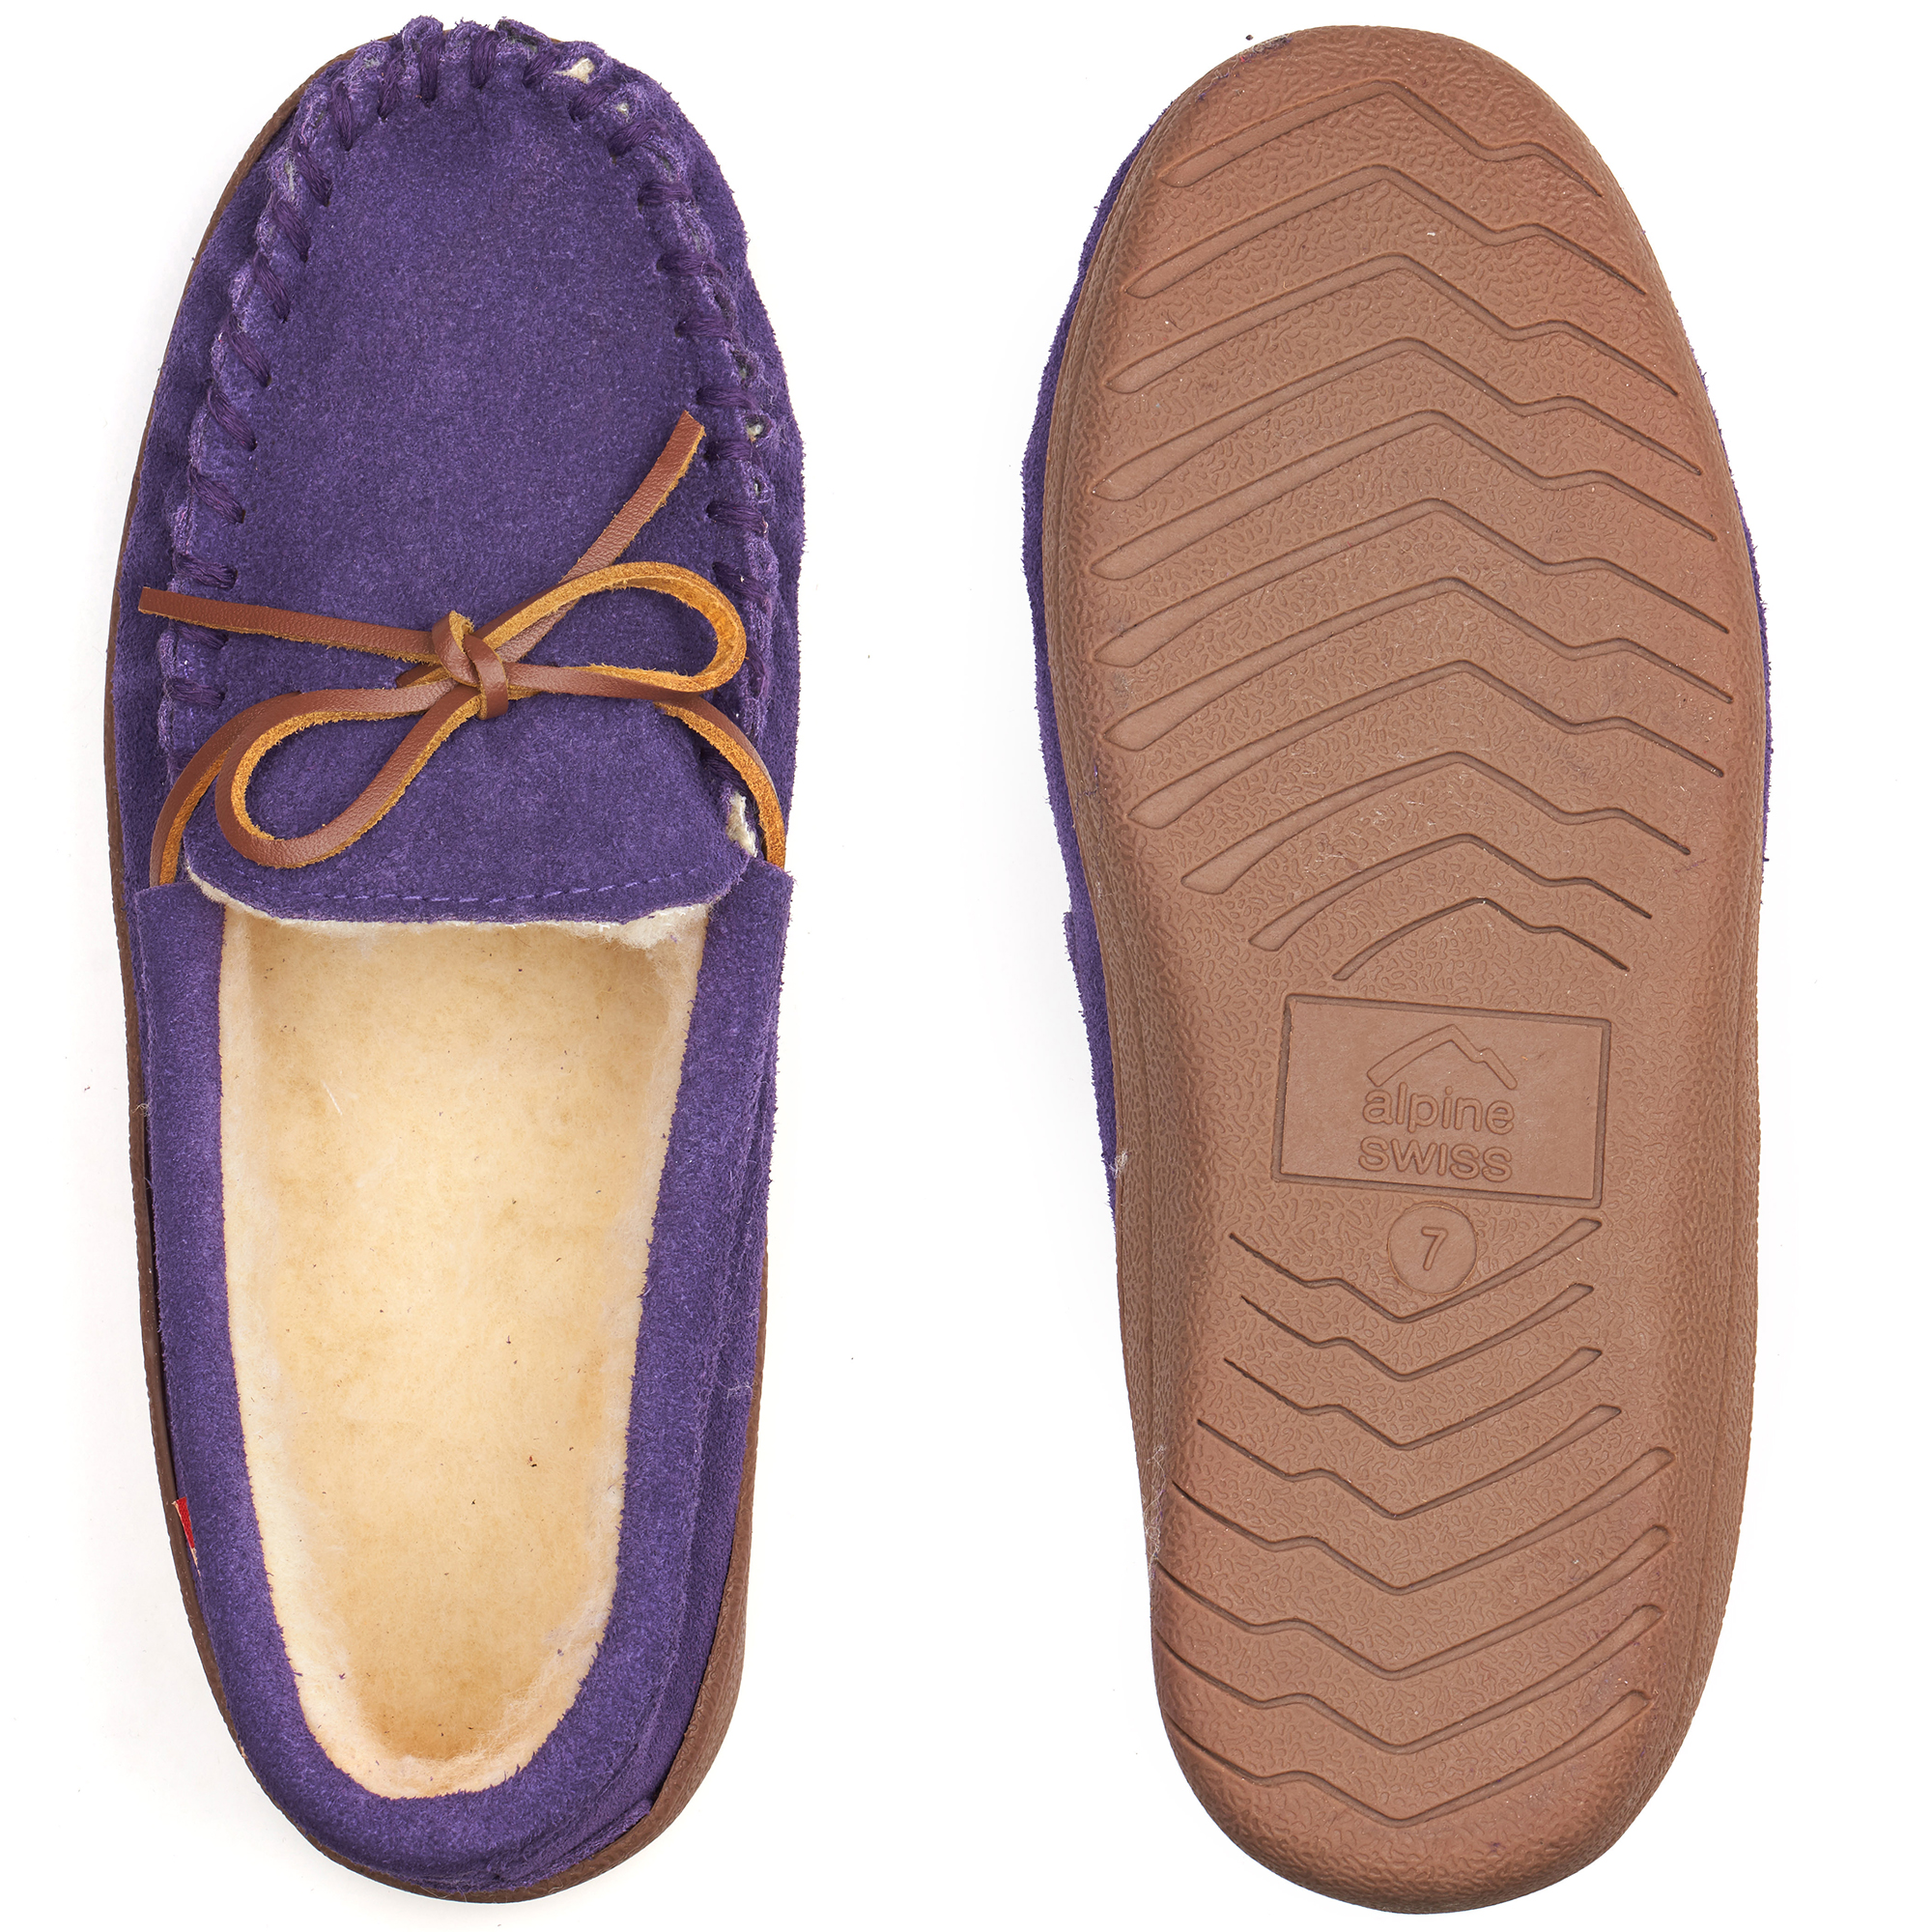 Alpine-Swiss-Sabine-Womens-Suede-Shearling-Moccasin-Slippers-House-Shoes-Slip-On miniature 39